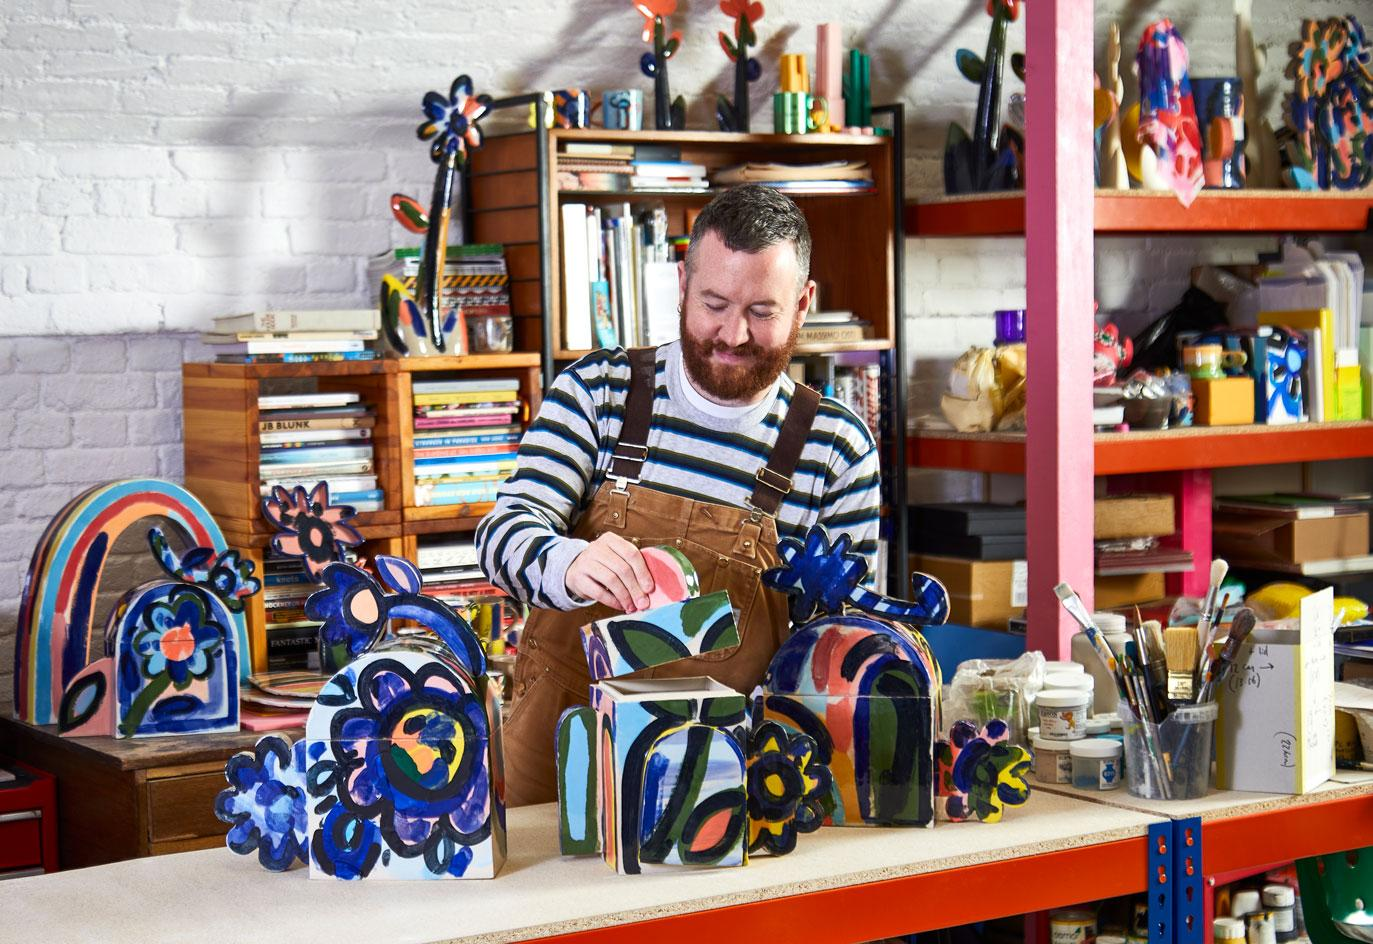 John Booth with ceramic funeral urns 'A Colourful Life' created with UK death specialists Farewill